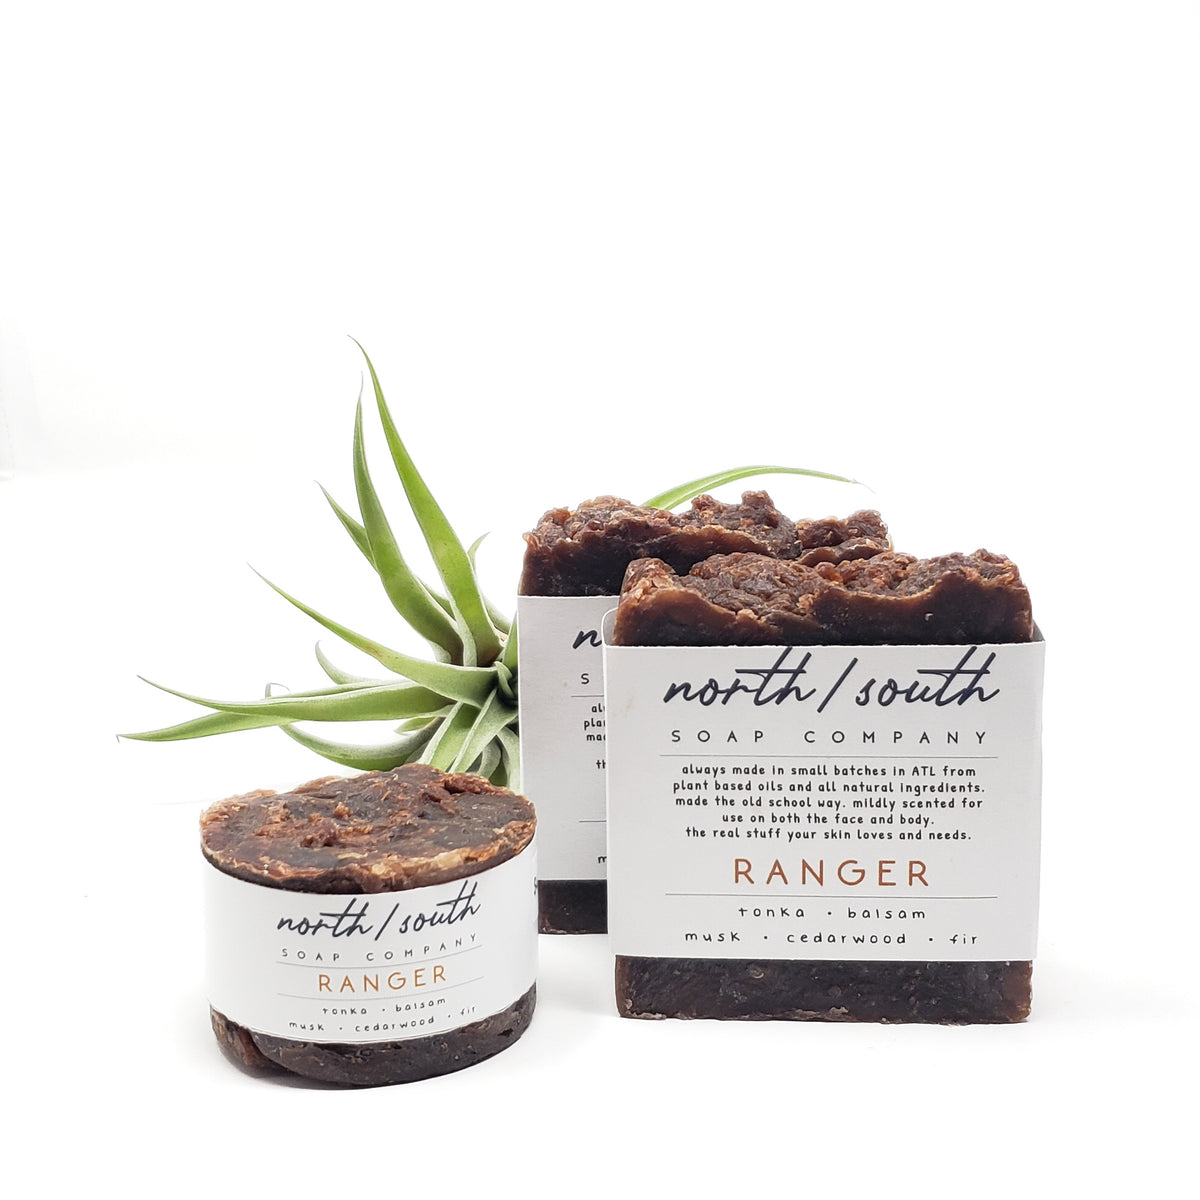 Ranger Natural Soap